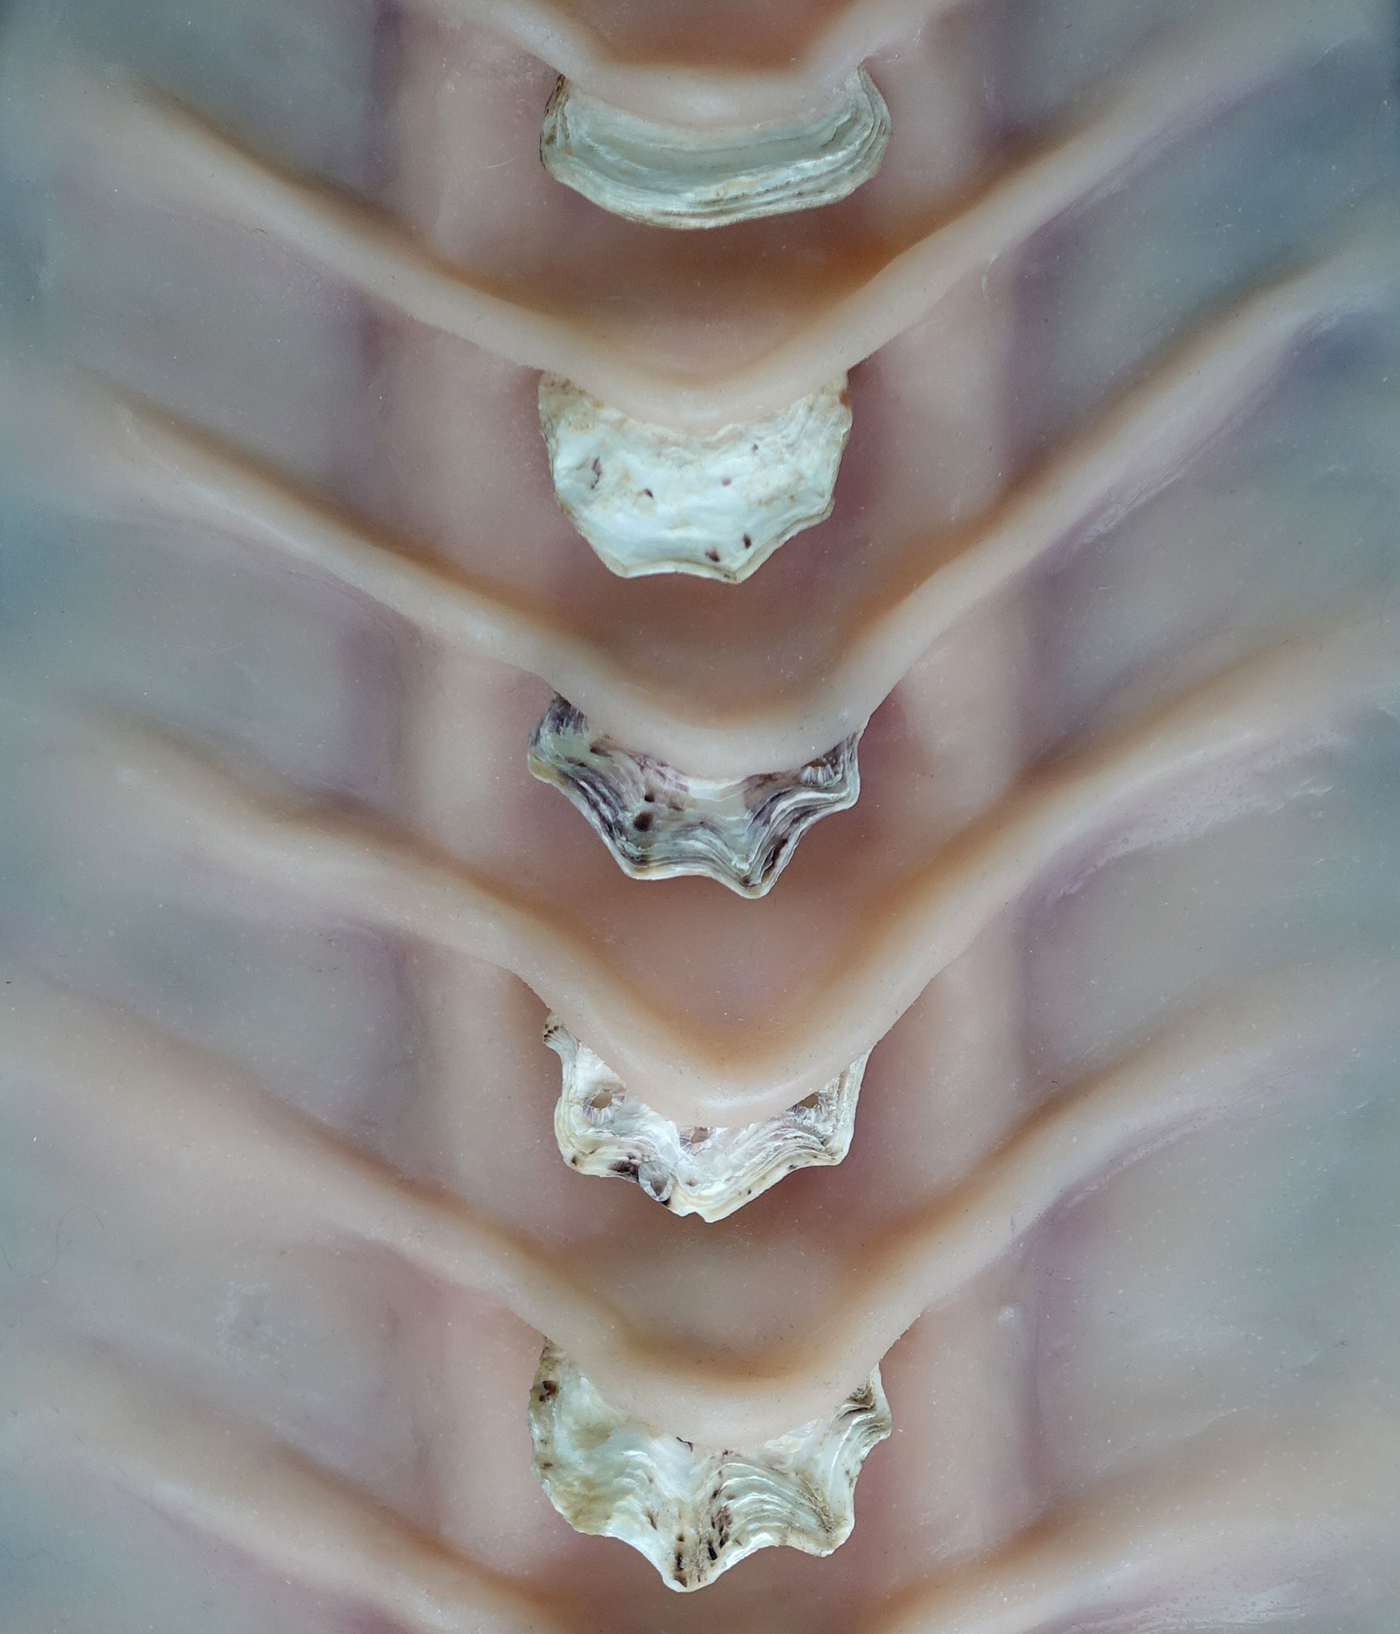 Detail of Zoonoisis, Erin Coates, 2020, sculptural prop made of silicon and oystershell.